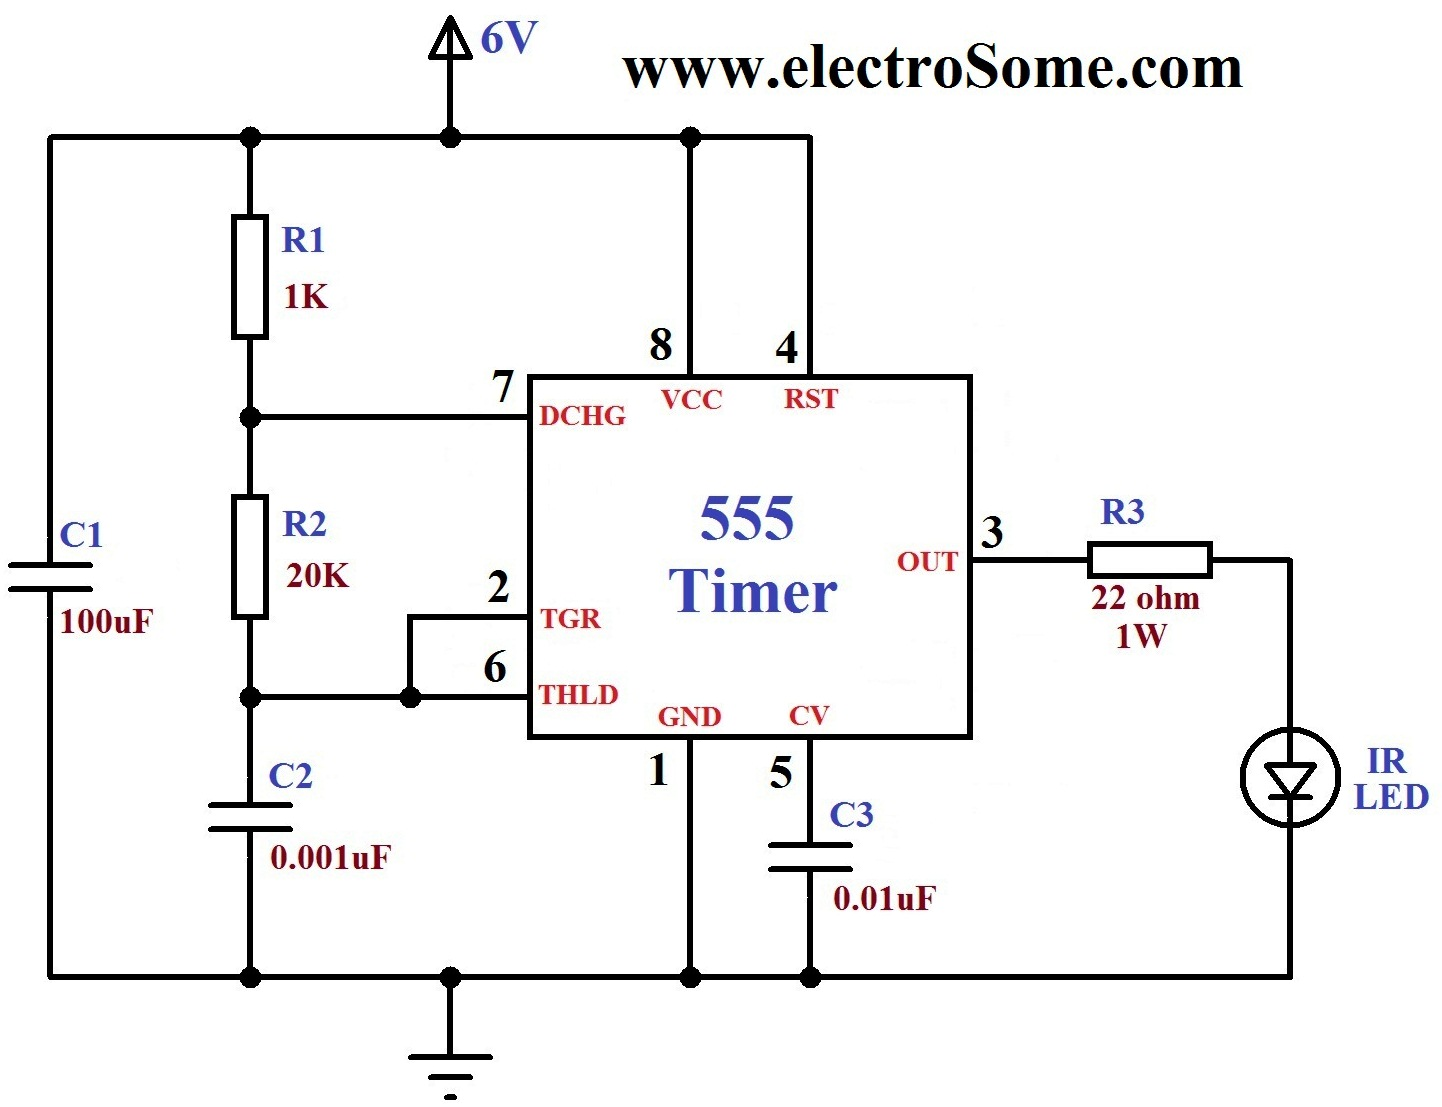 hight resolution of infrared remote control for home appliances hobby in electronics ir remote control home appliance circuit diagram